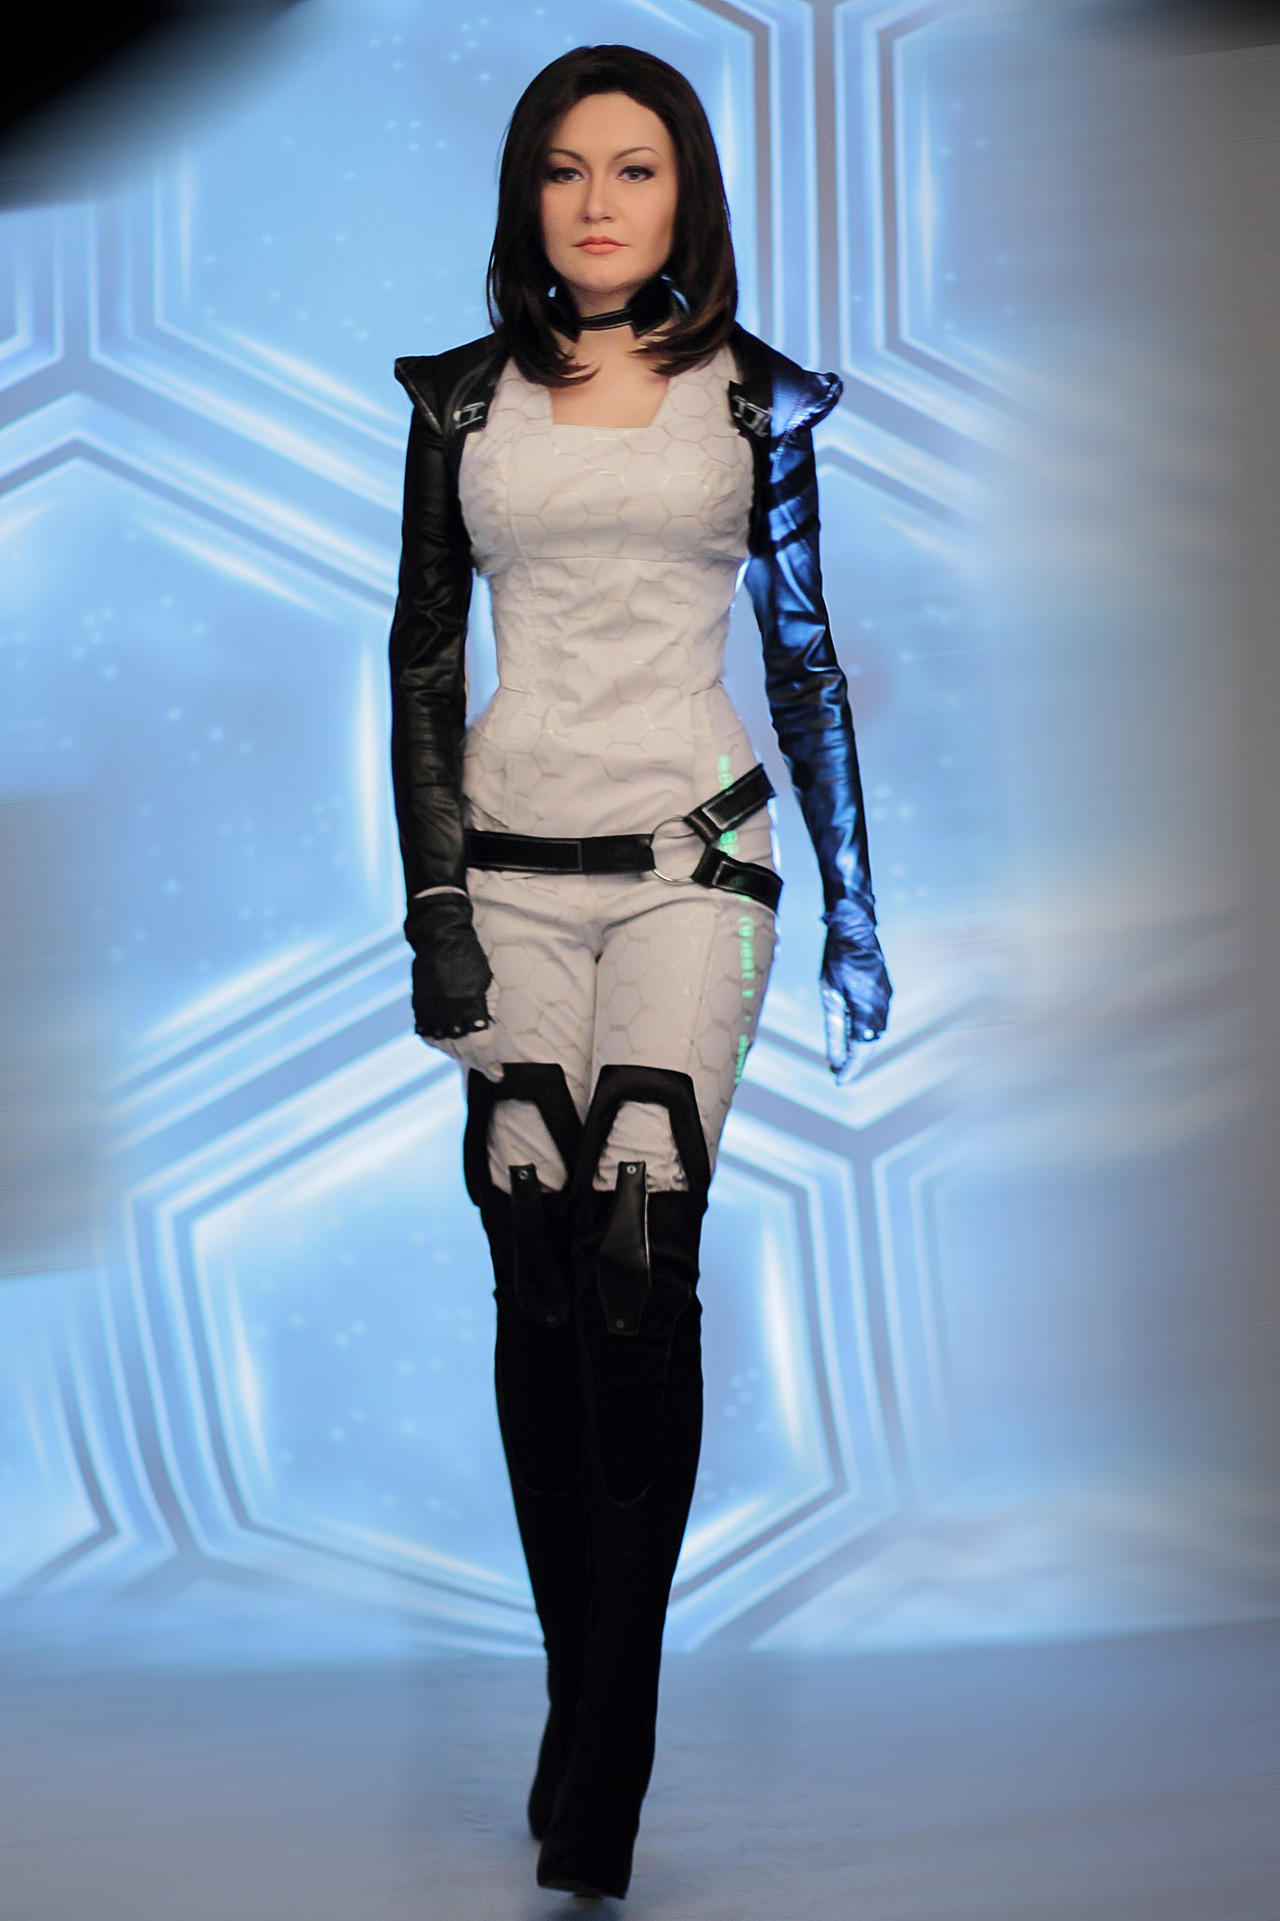 Miranda Lawson - Mass Effect cosplay by MonoAbel